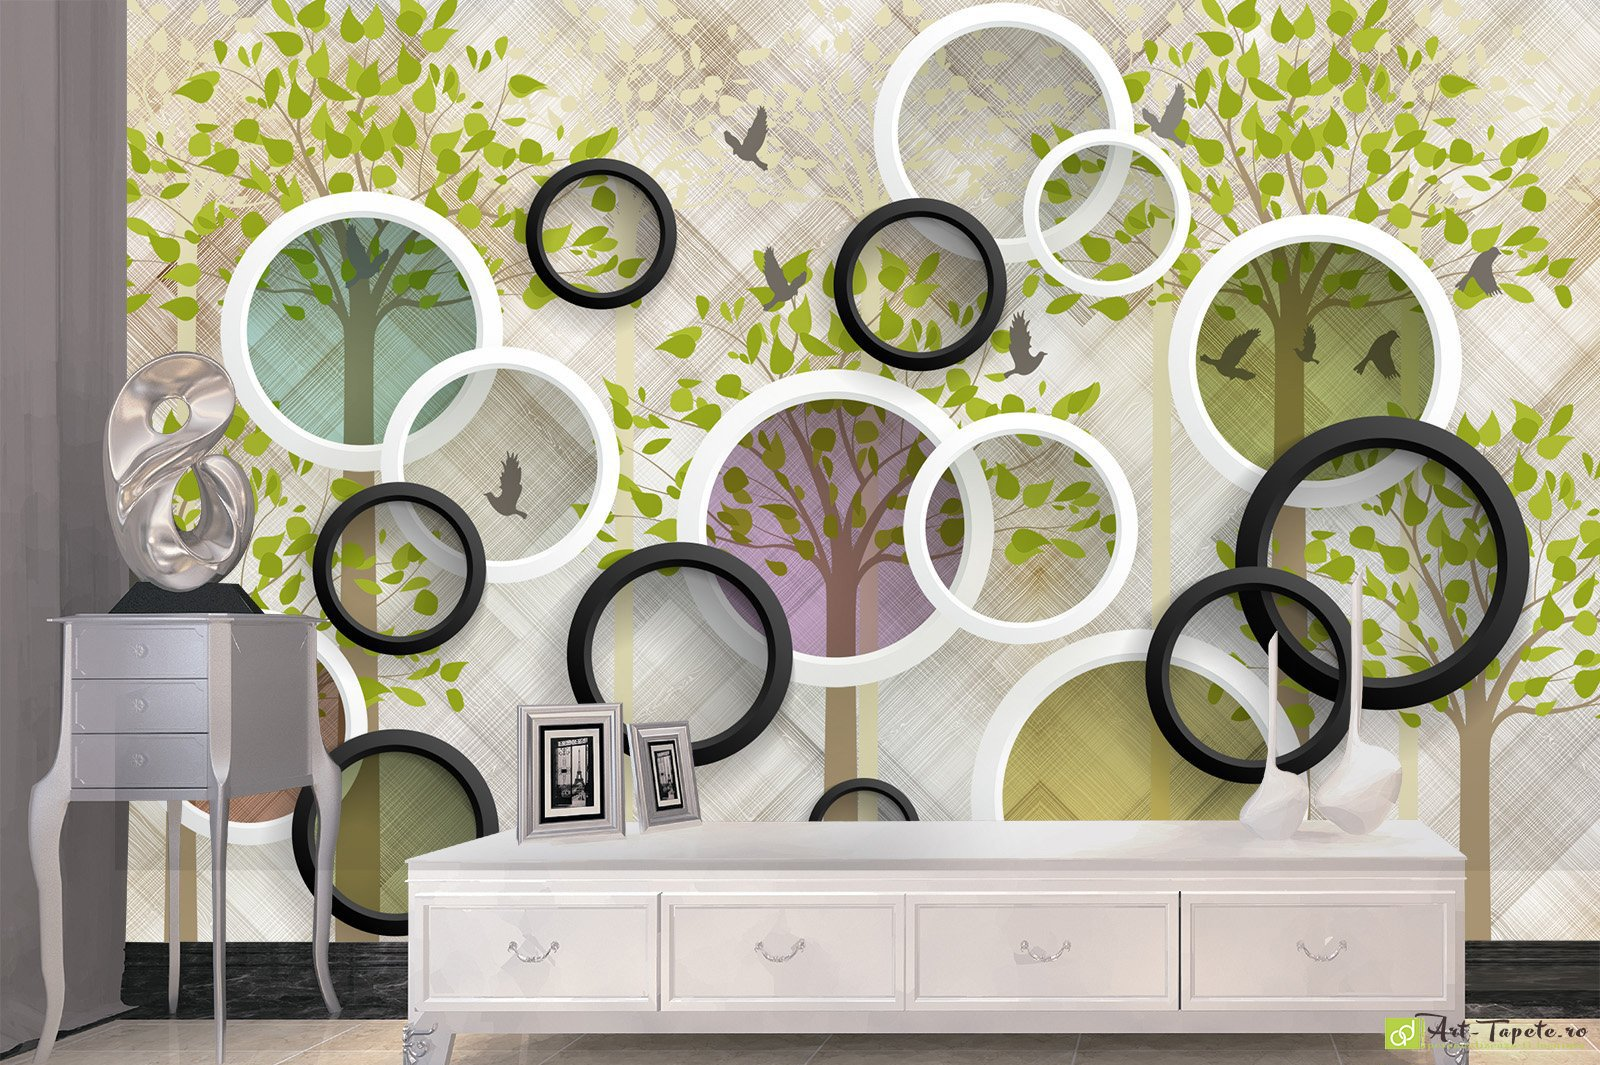 Photo Wallpaper 3d Effect Circles And Nature Fototapet Art Check Out Our Stunning Photo Wallpaper Options For A Quality Wall Mural Buy Online